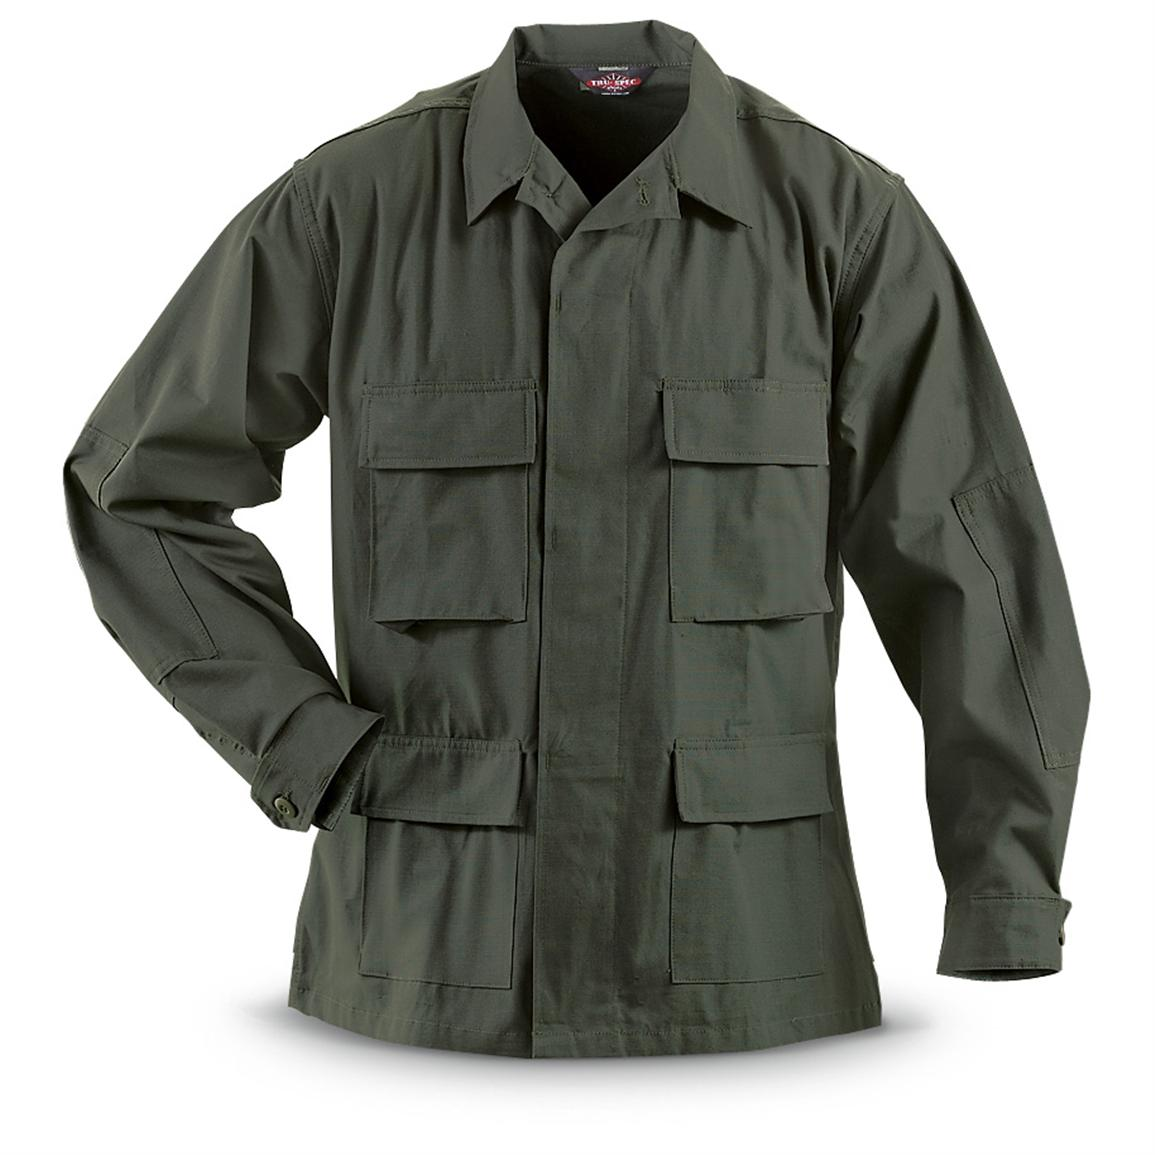 HQ ISSUE™ BDU Military-style Shirt, Olive Drab